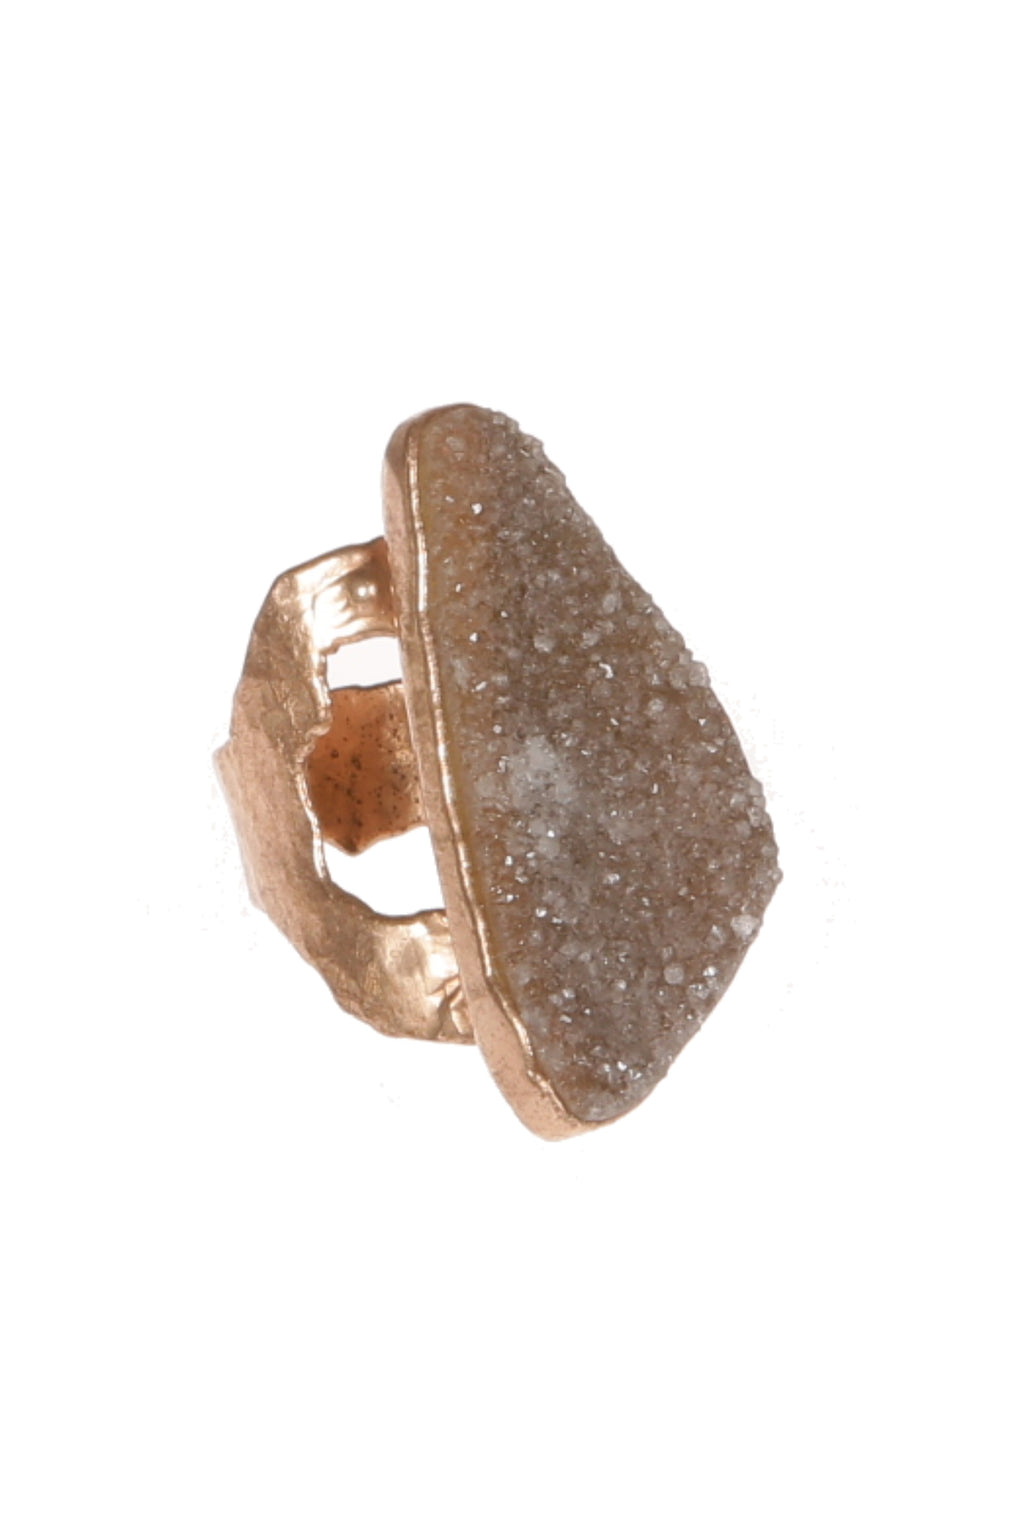 DUG UP NEW YORK |  Fossil Druzy Ring 18K fill over Silver